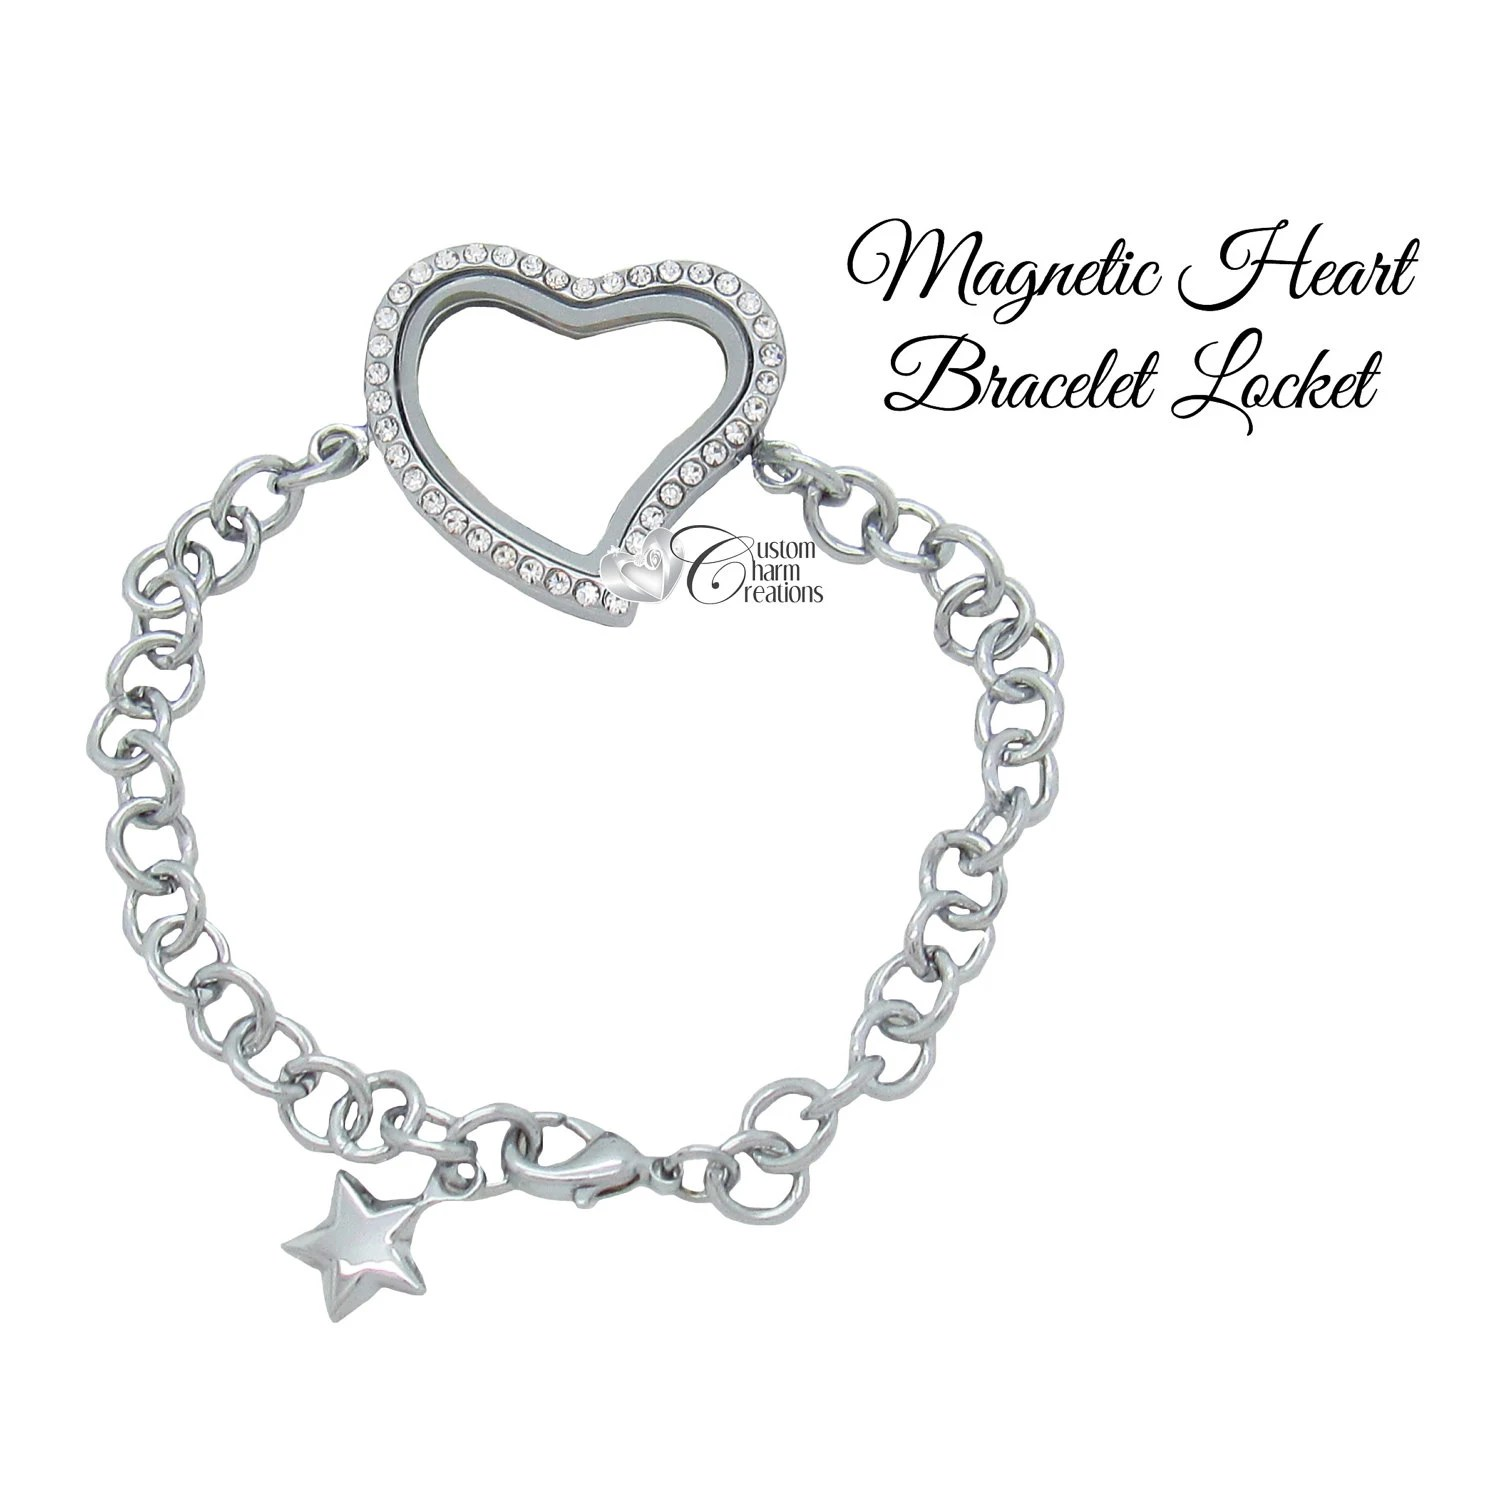 Floating Locket Bracelet Heart Crystal Rhinestones